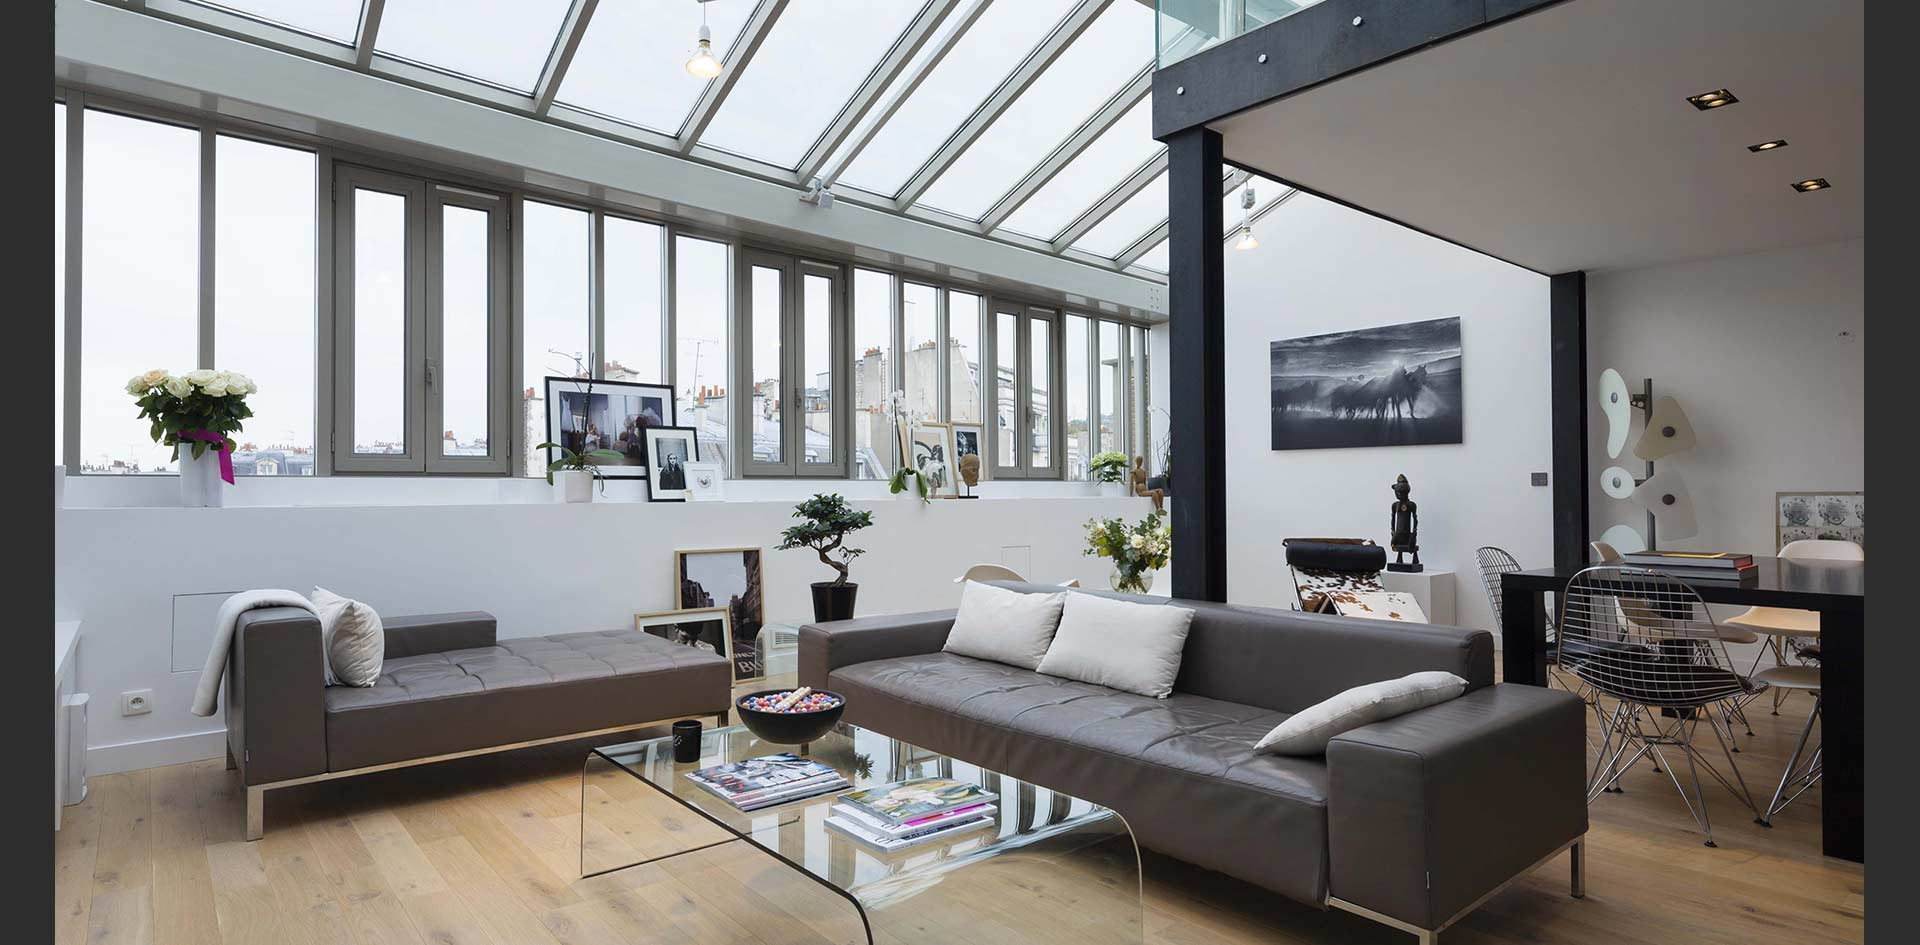 Small Design Ideas for Large Living Room